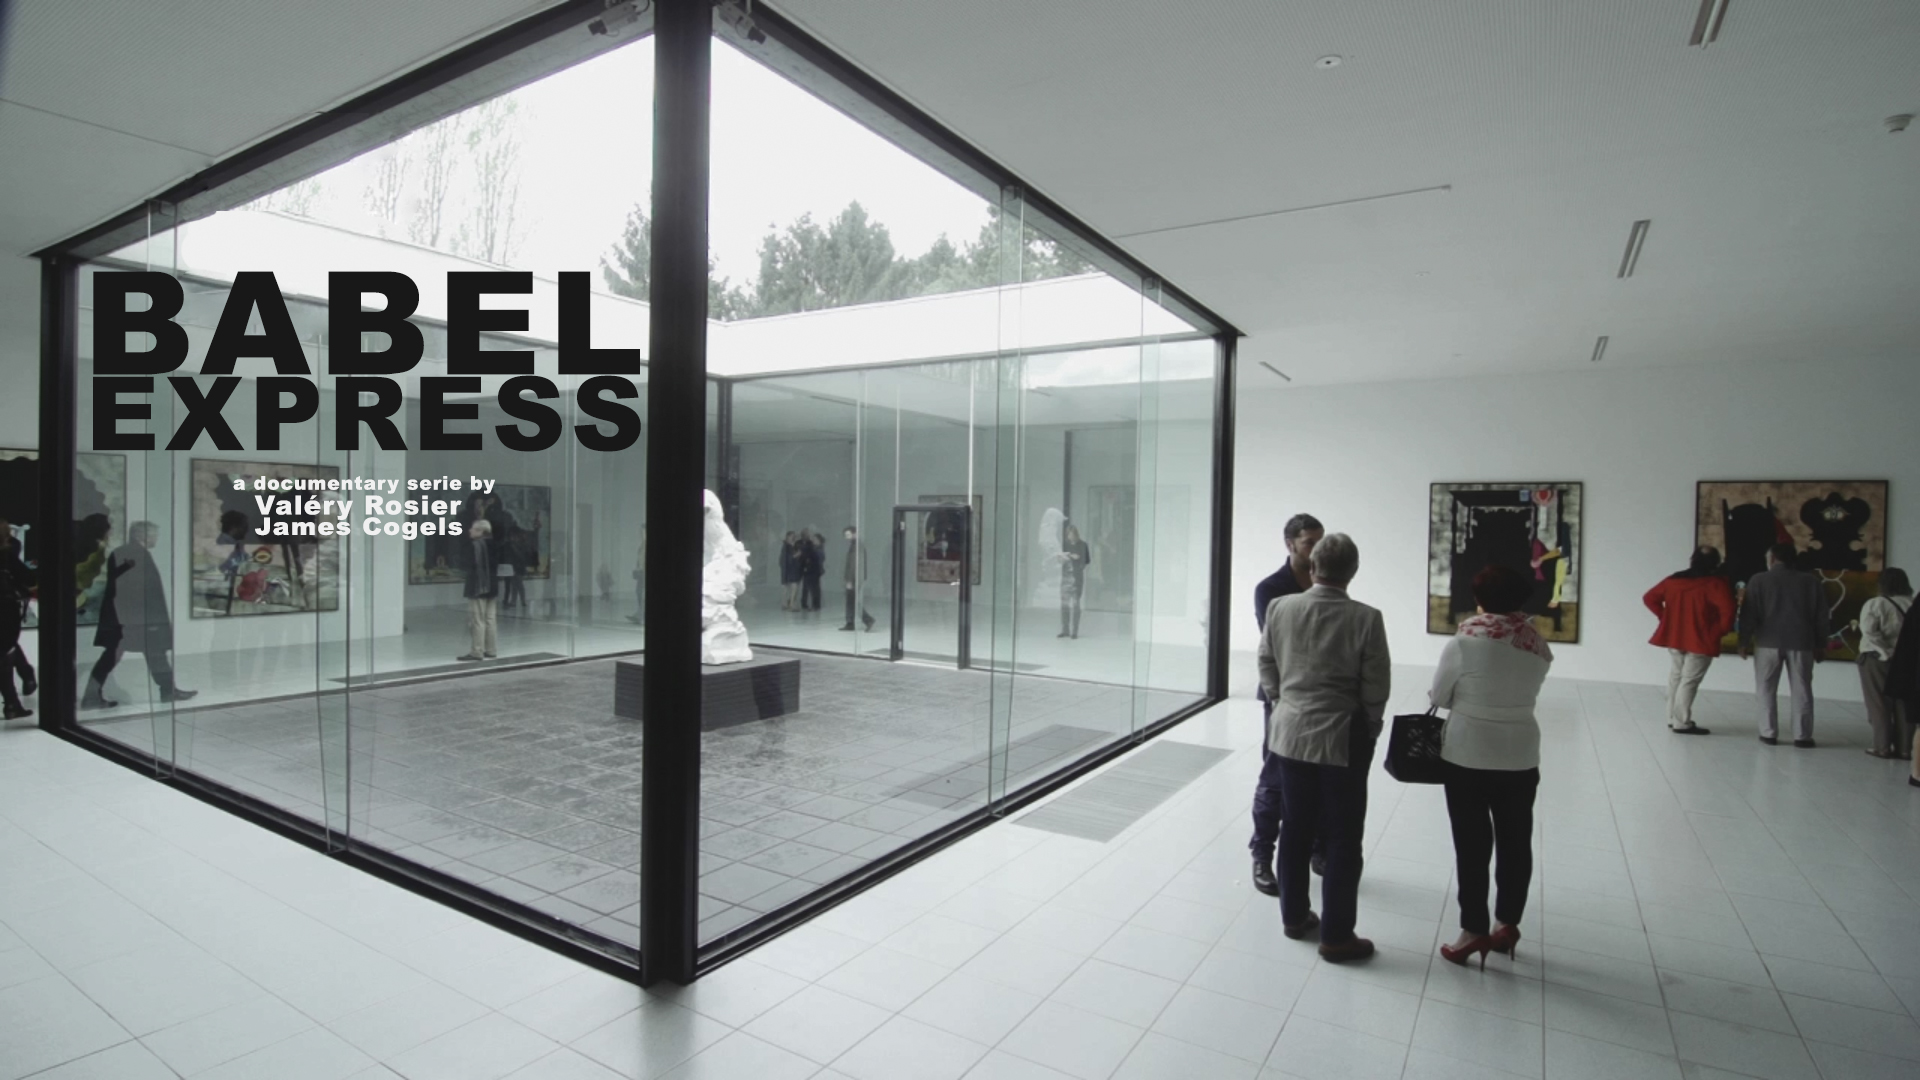 doc_babel-express_small